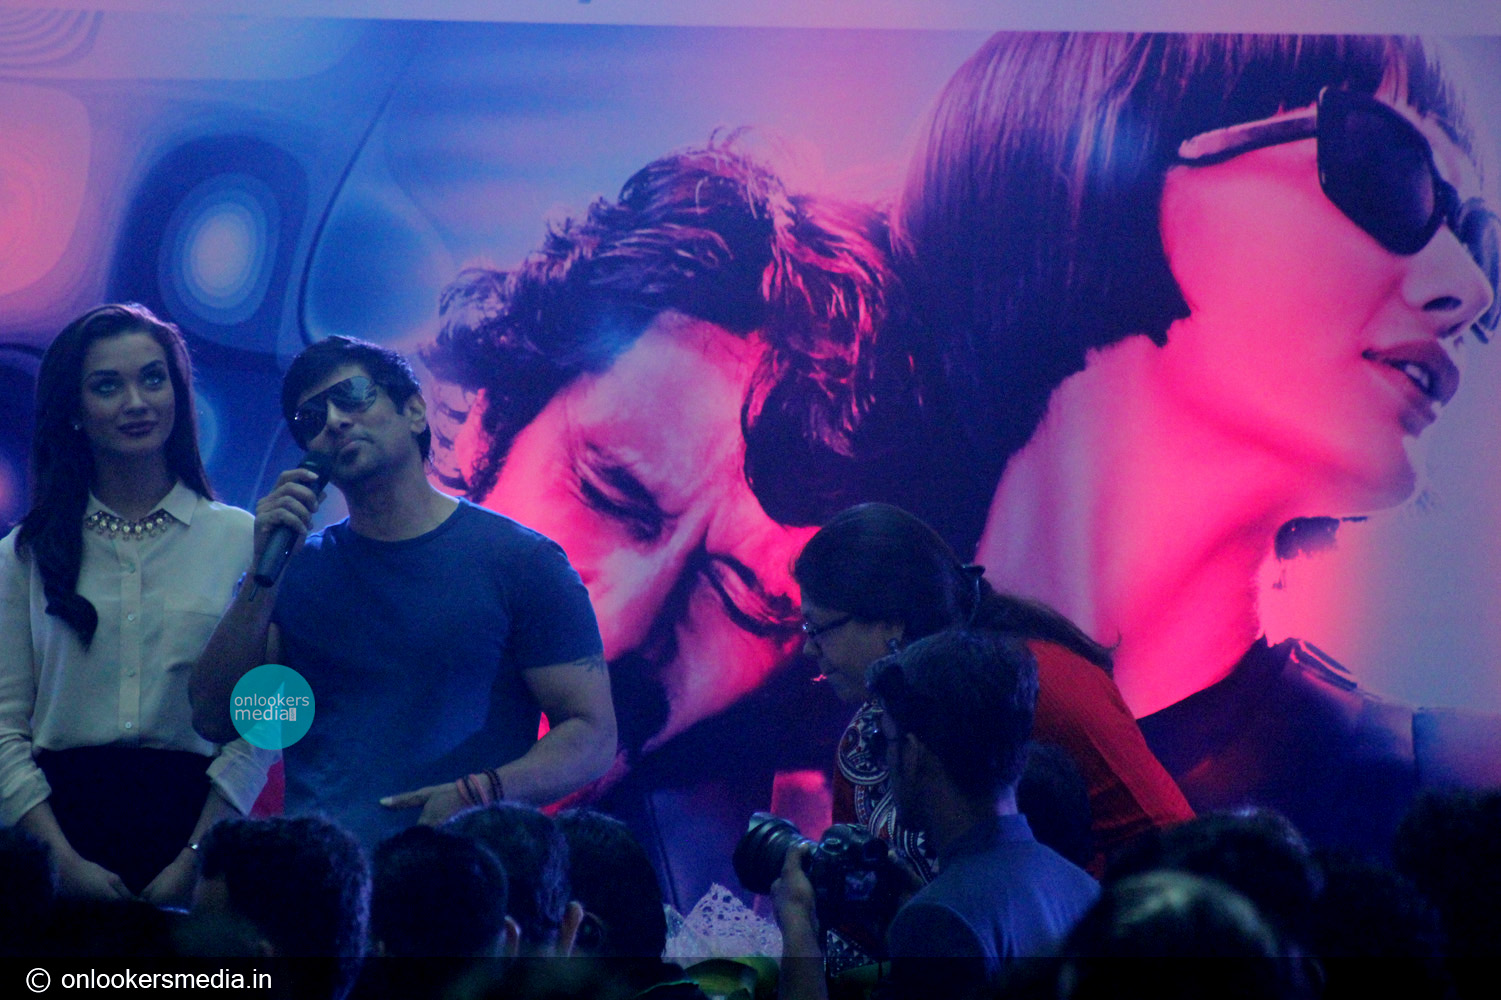 http://onlookersmedia.in/wp-content/uploads/2015/01/Vikram-at-Lulu-mall-for-I-promotional-event-Amy-Jackson-Onlookers-Media-13.jpg